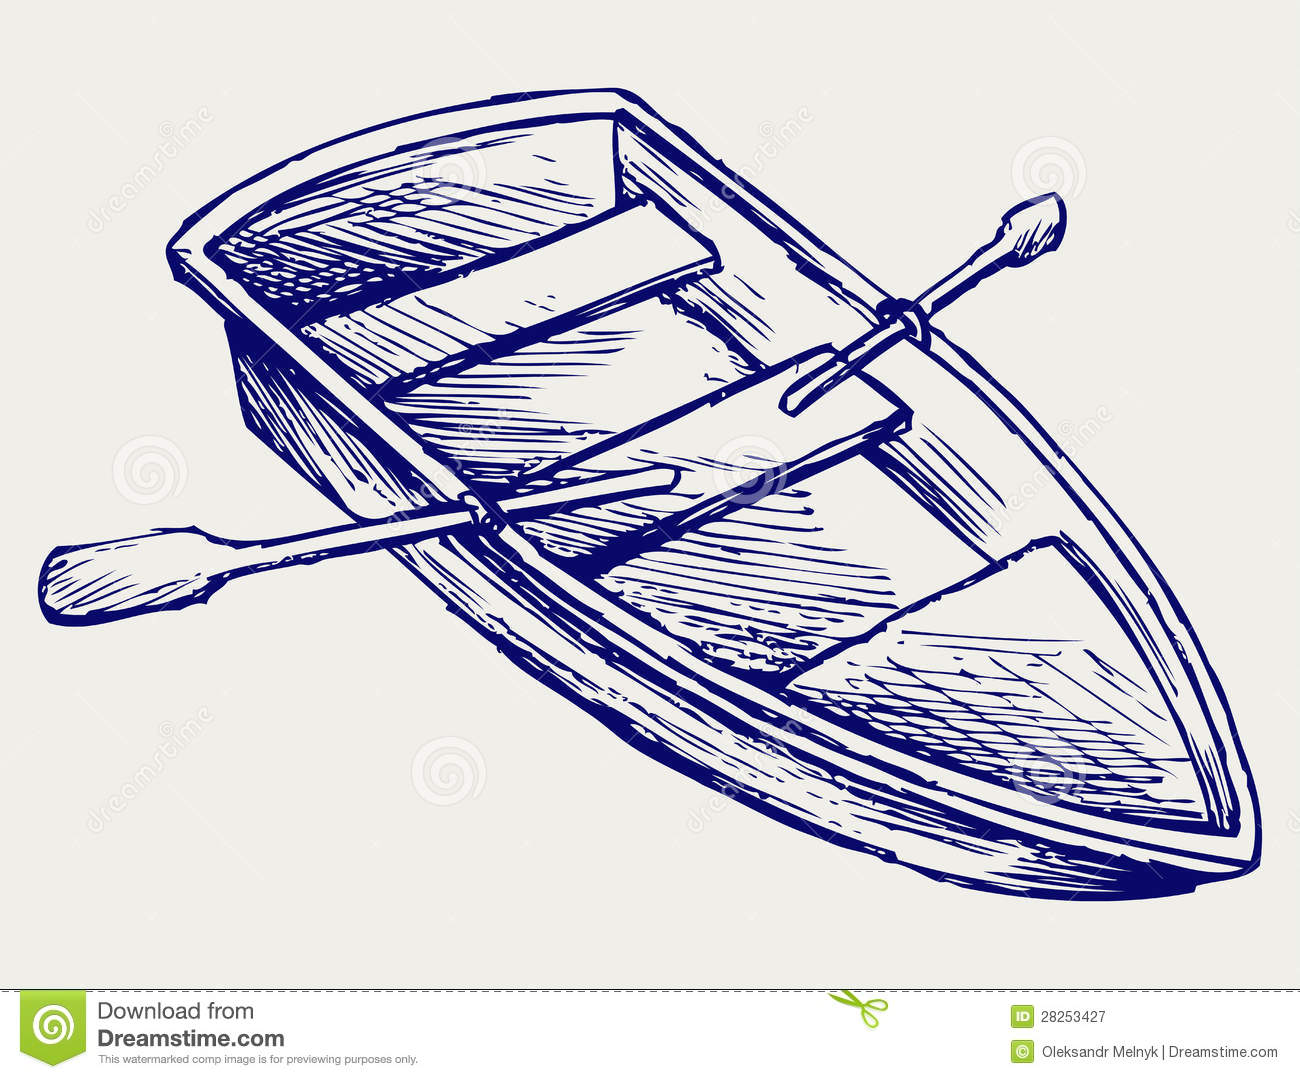 Wooden Boat With Paddles Royalty Free Stock Photography - Image: 28253427